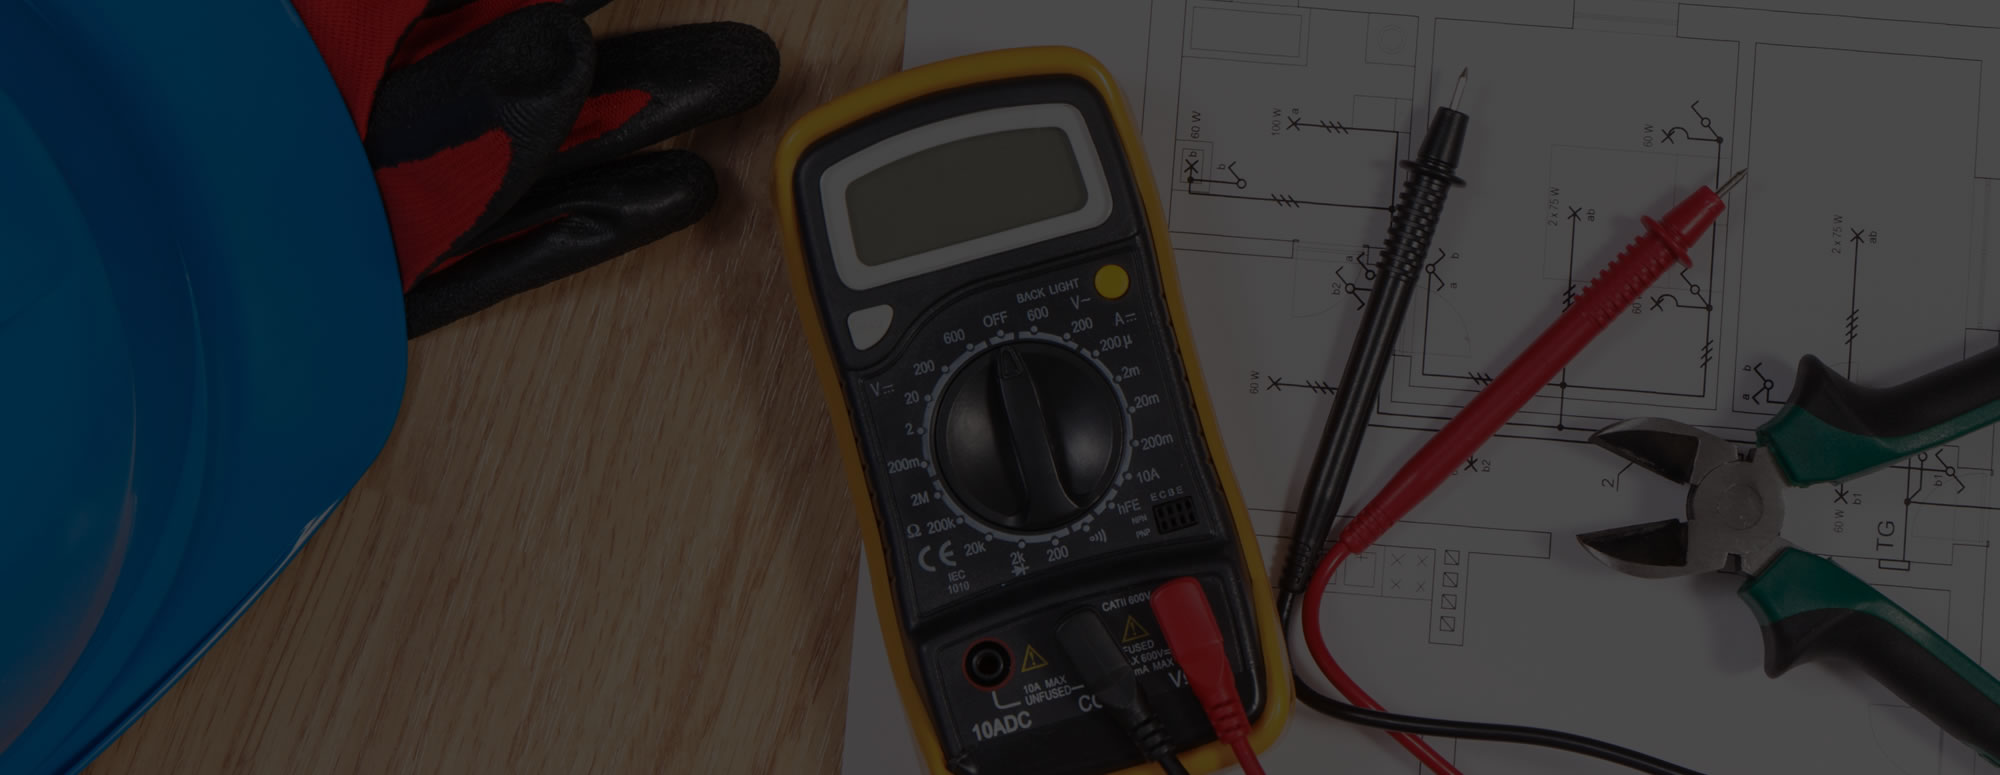 Commercial Electrical Services Sydney